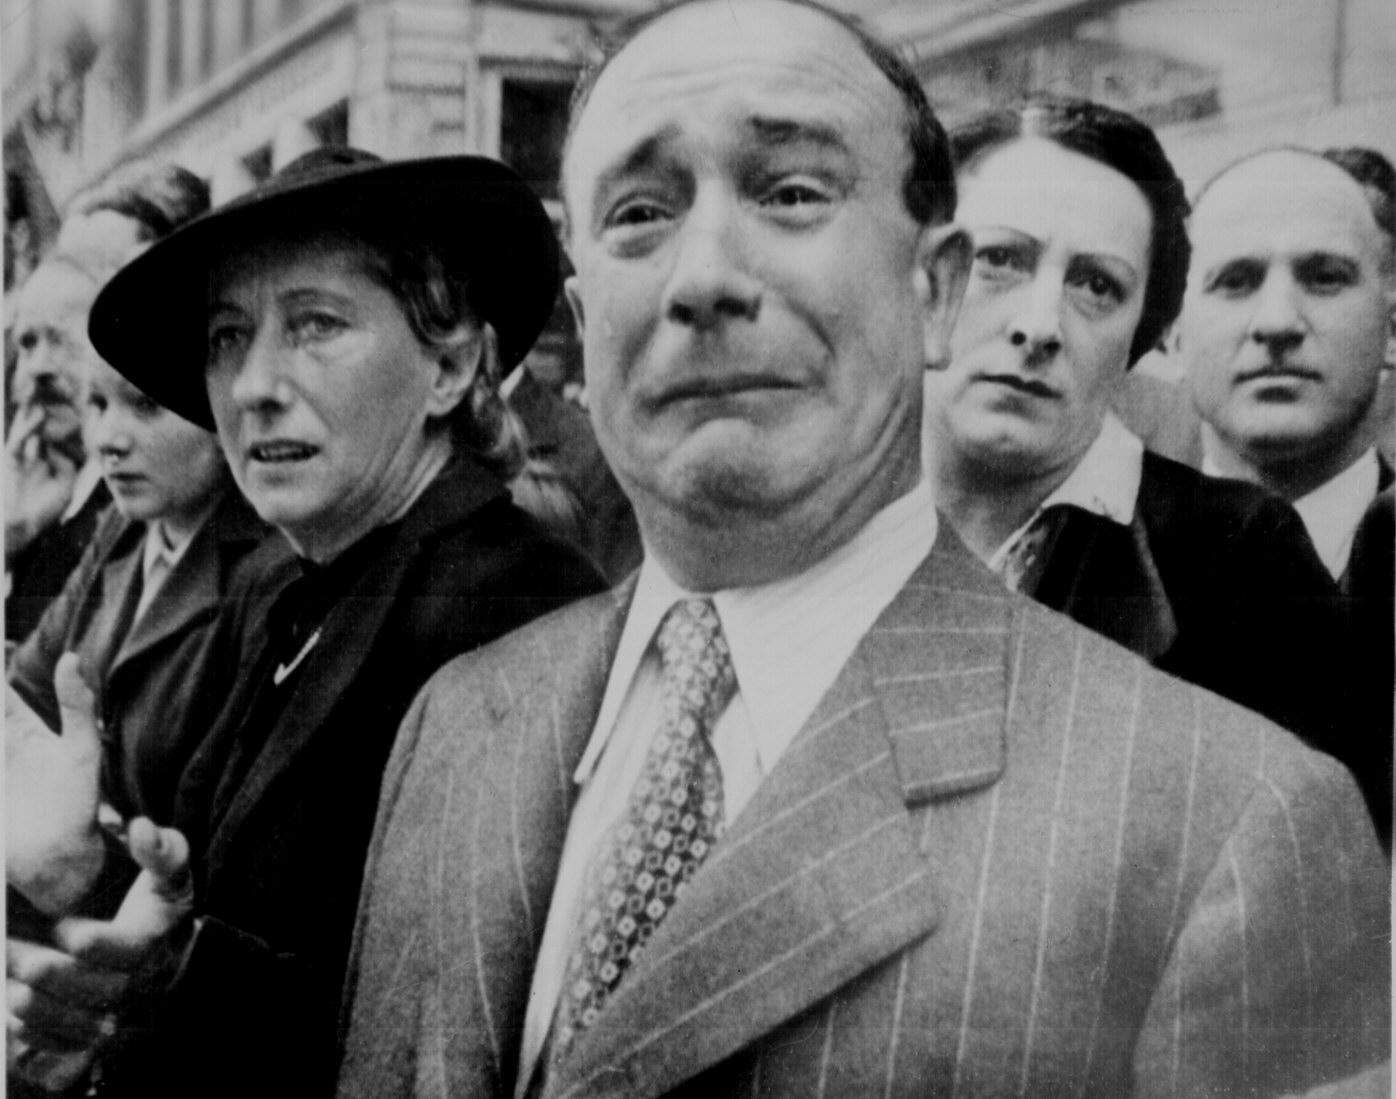 A Frenchman Weeps As Nazi Sol Rs March In Paris France